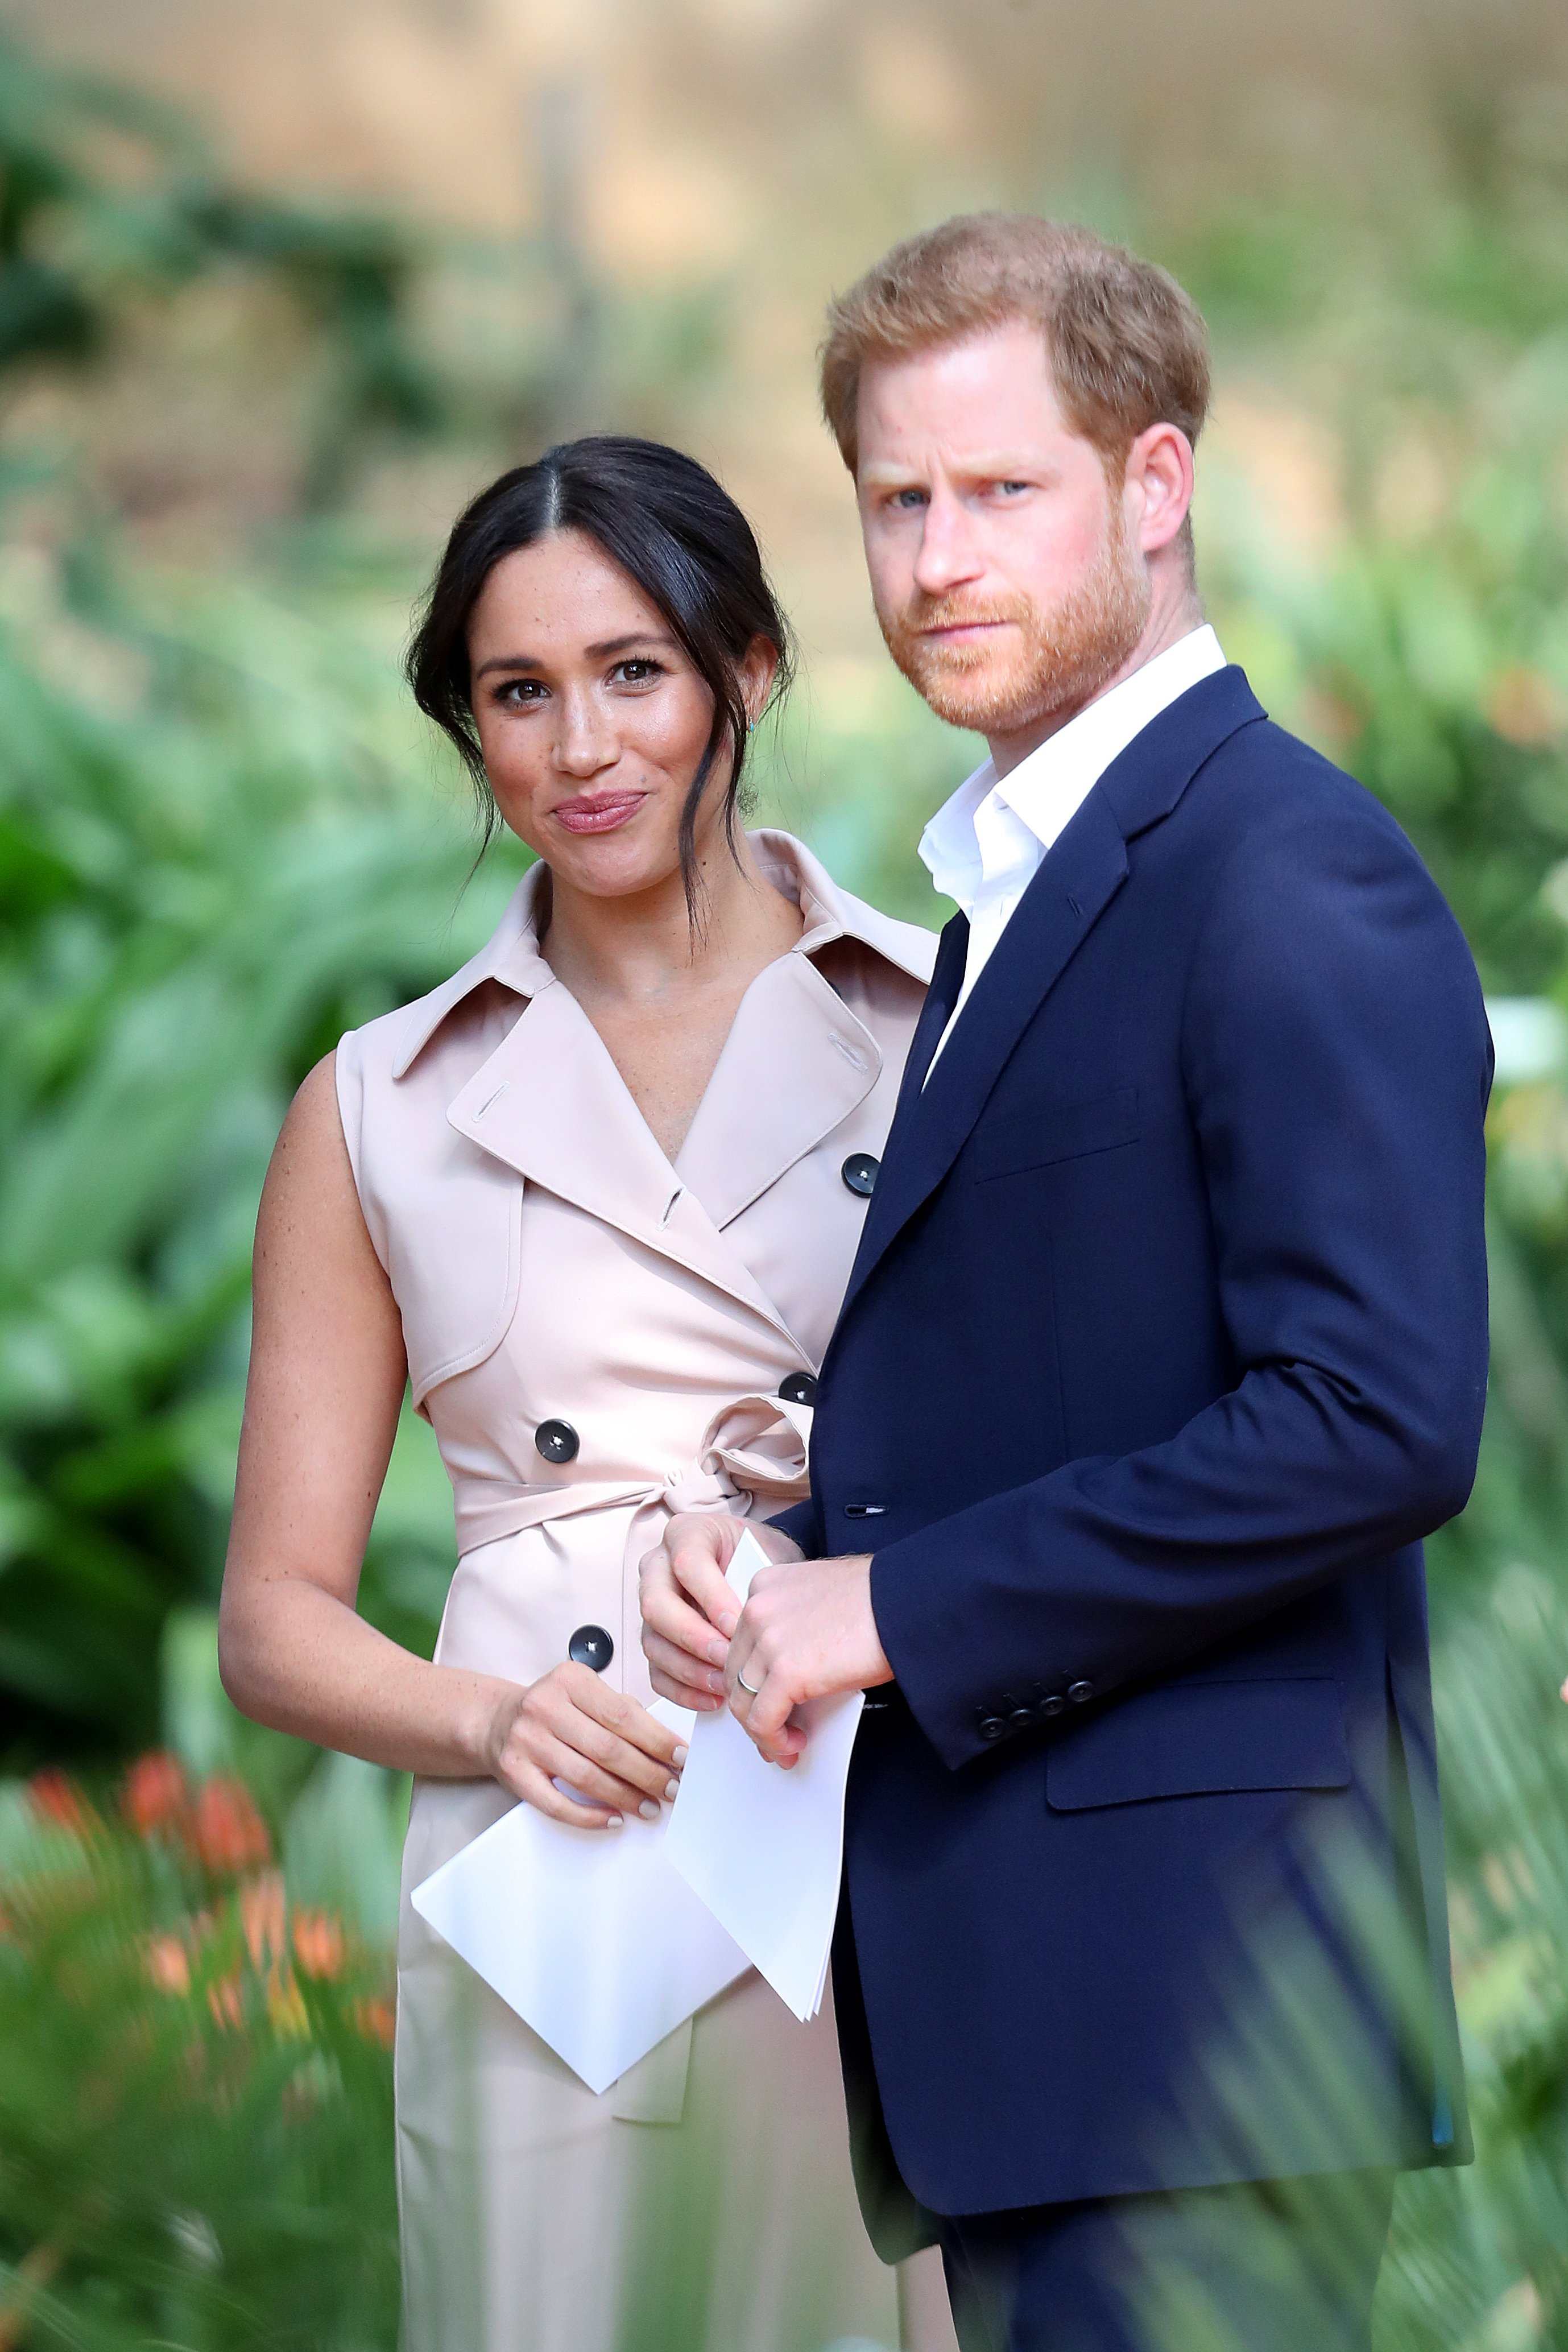 Prince Harry and Meghan Markle on October 02, 2019 in Johannesburg, South Africa. | Photo: Getty Images